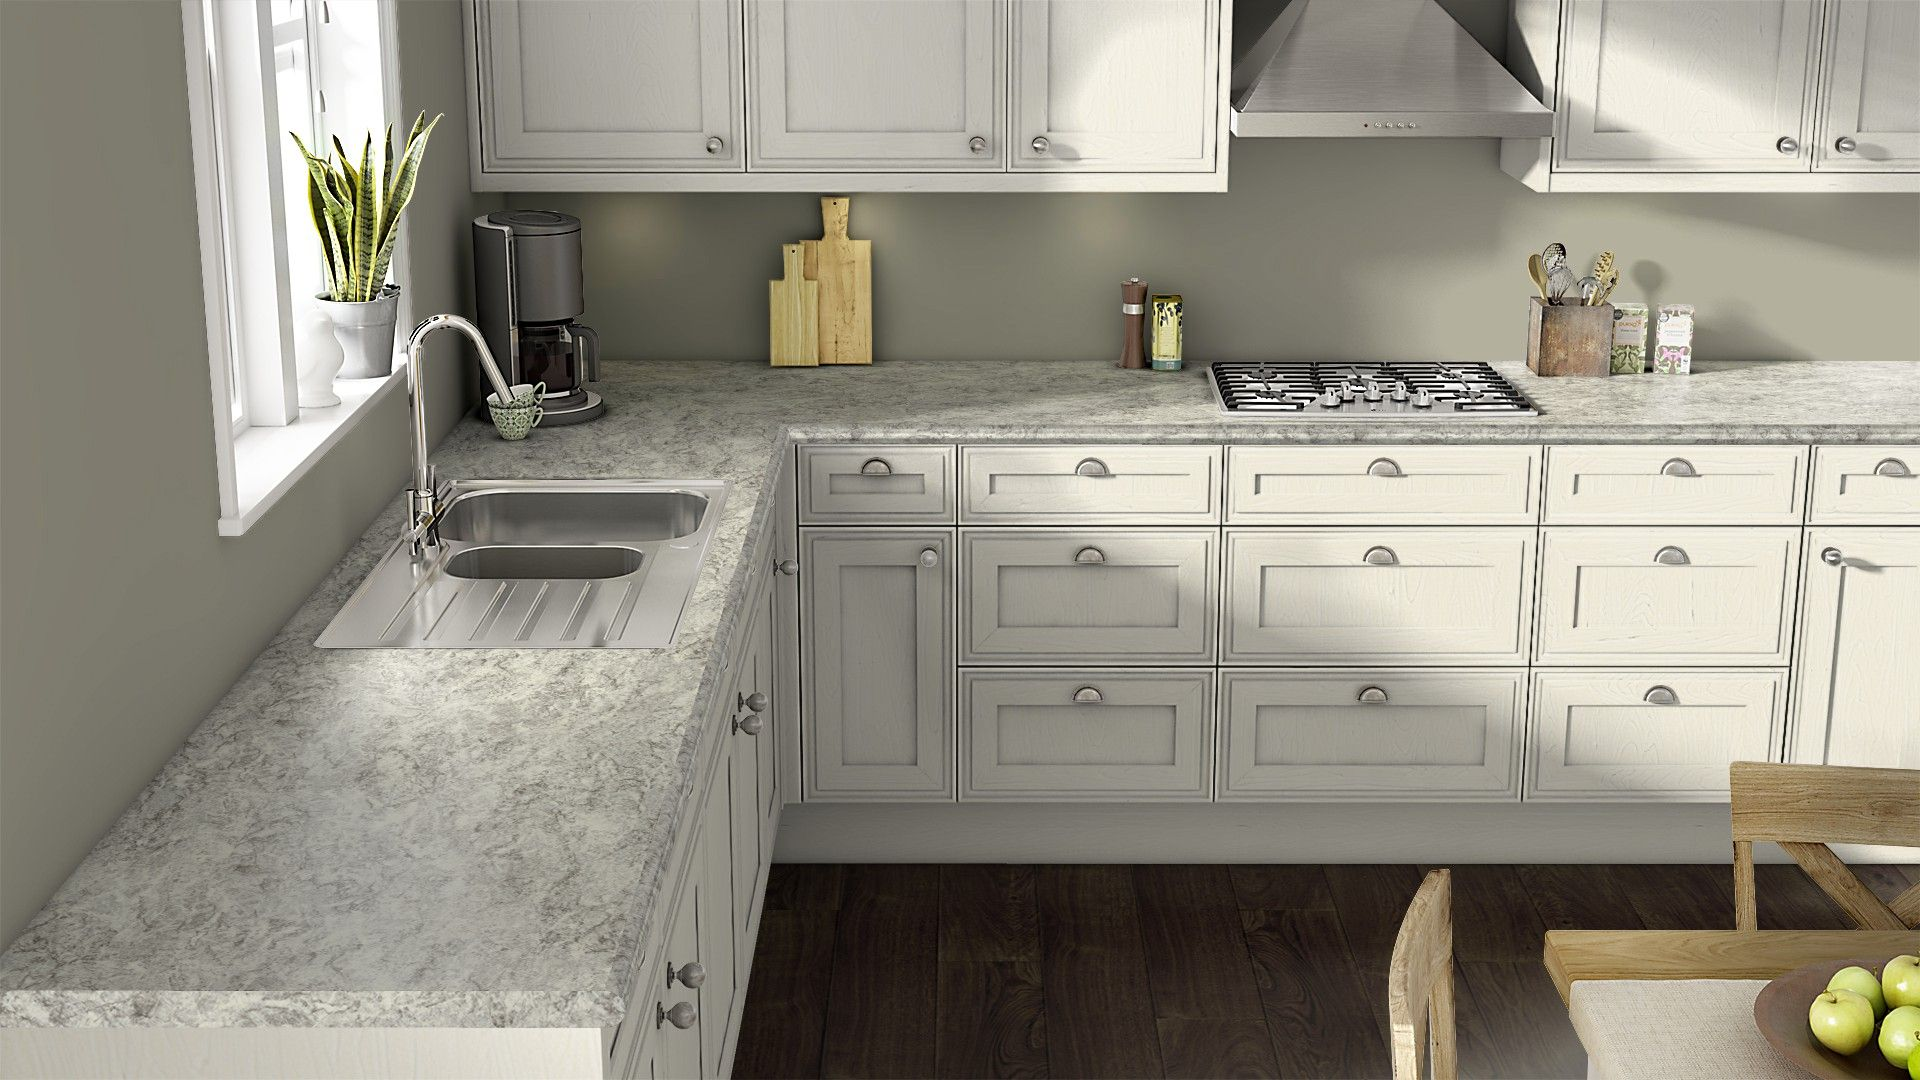 Wilsonart Italian White Di Pesco Countertop Shelbyville Pinterest Countertop Kitchens And